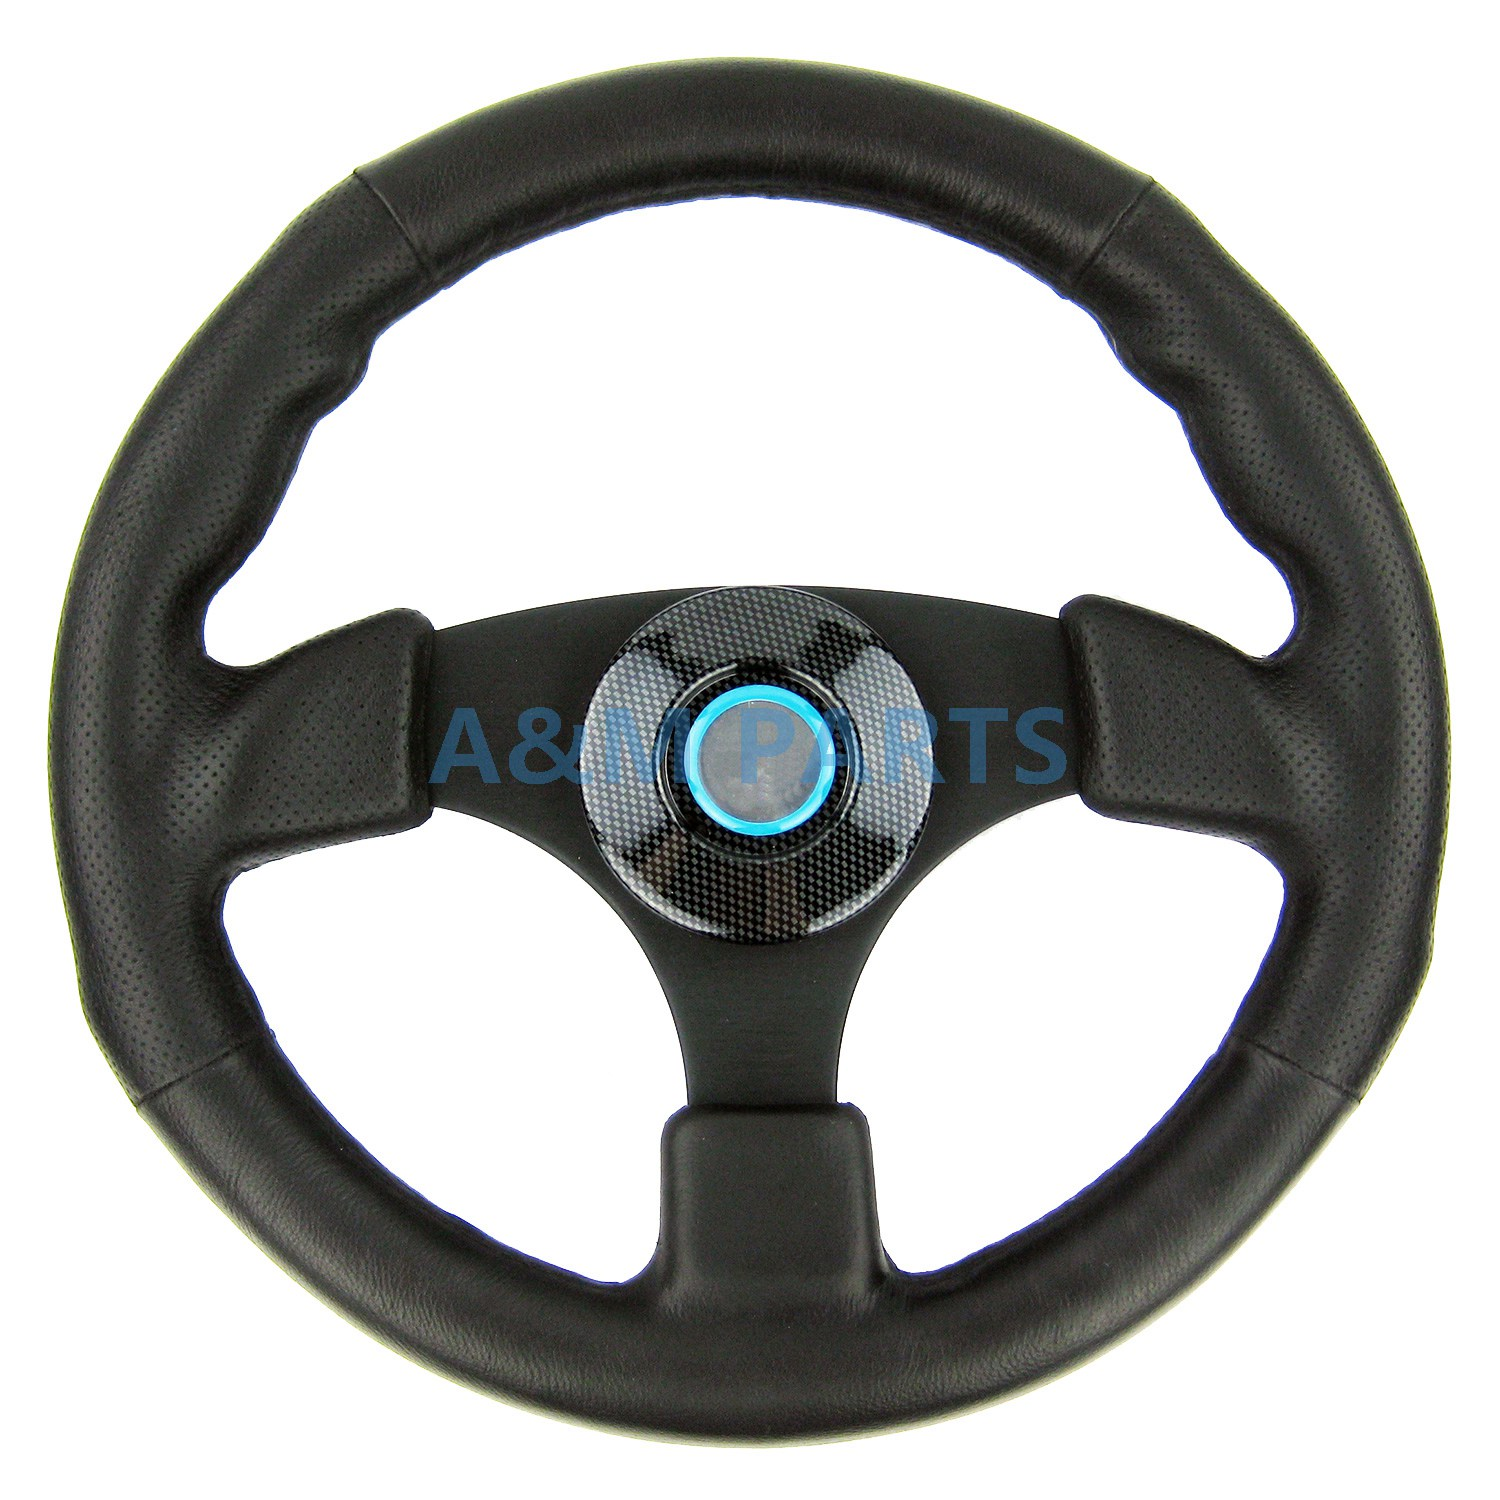 Sport Marine Steering Wheel Polyurethane Leather Grip Alloy Aluminum Spoke Boat Steering 13-1/2 free shipping 128 180mm aluminum alloy metal water steering wheel for rc gasoline boat racing o boat 180mm steering wheel